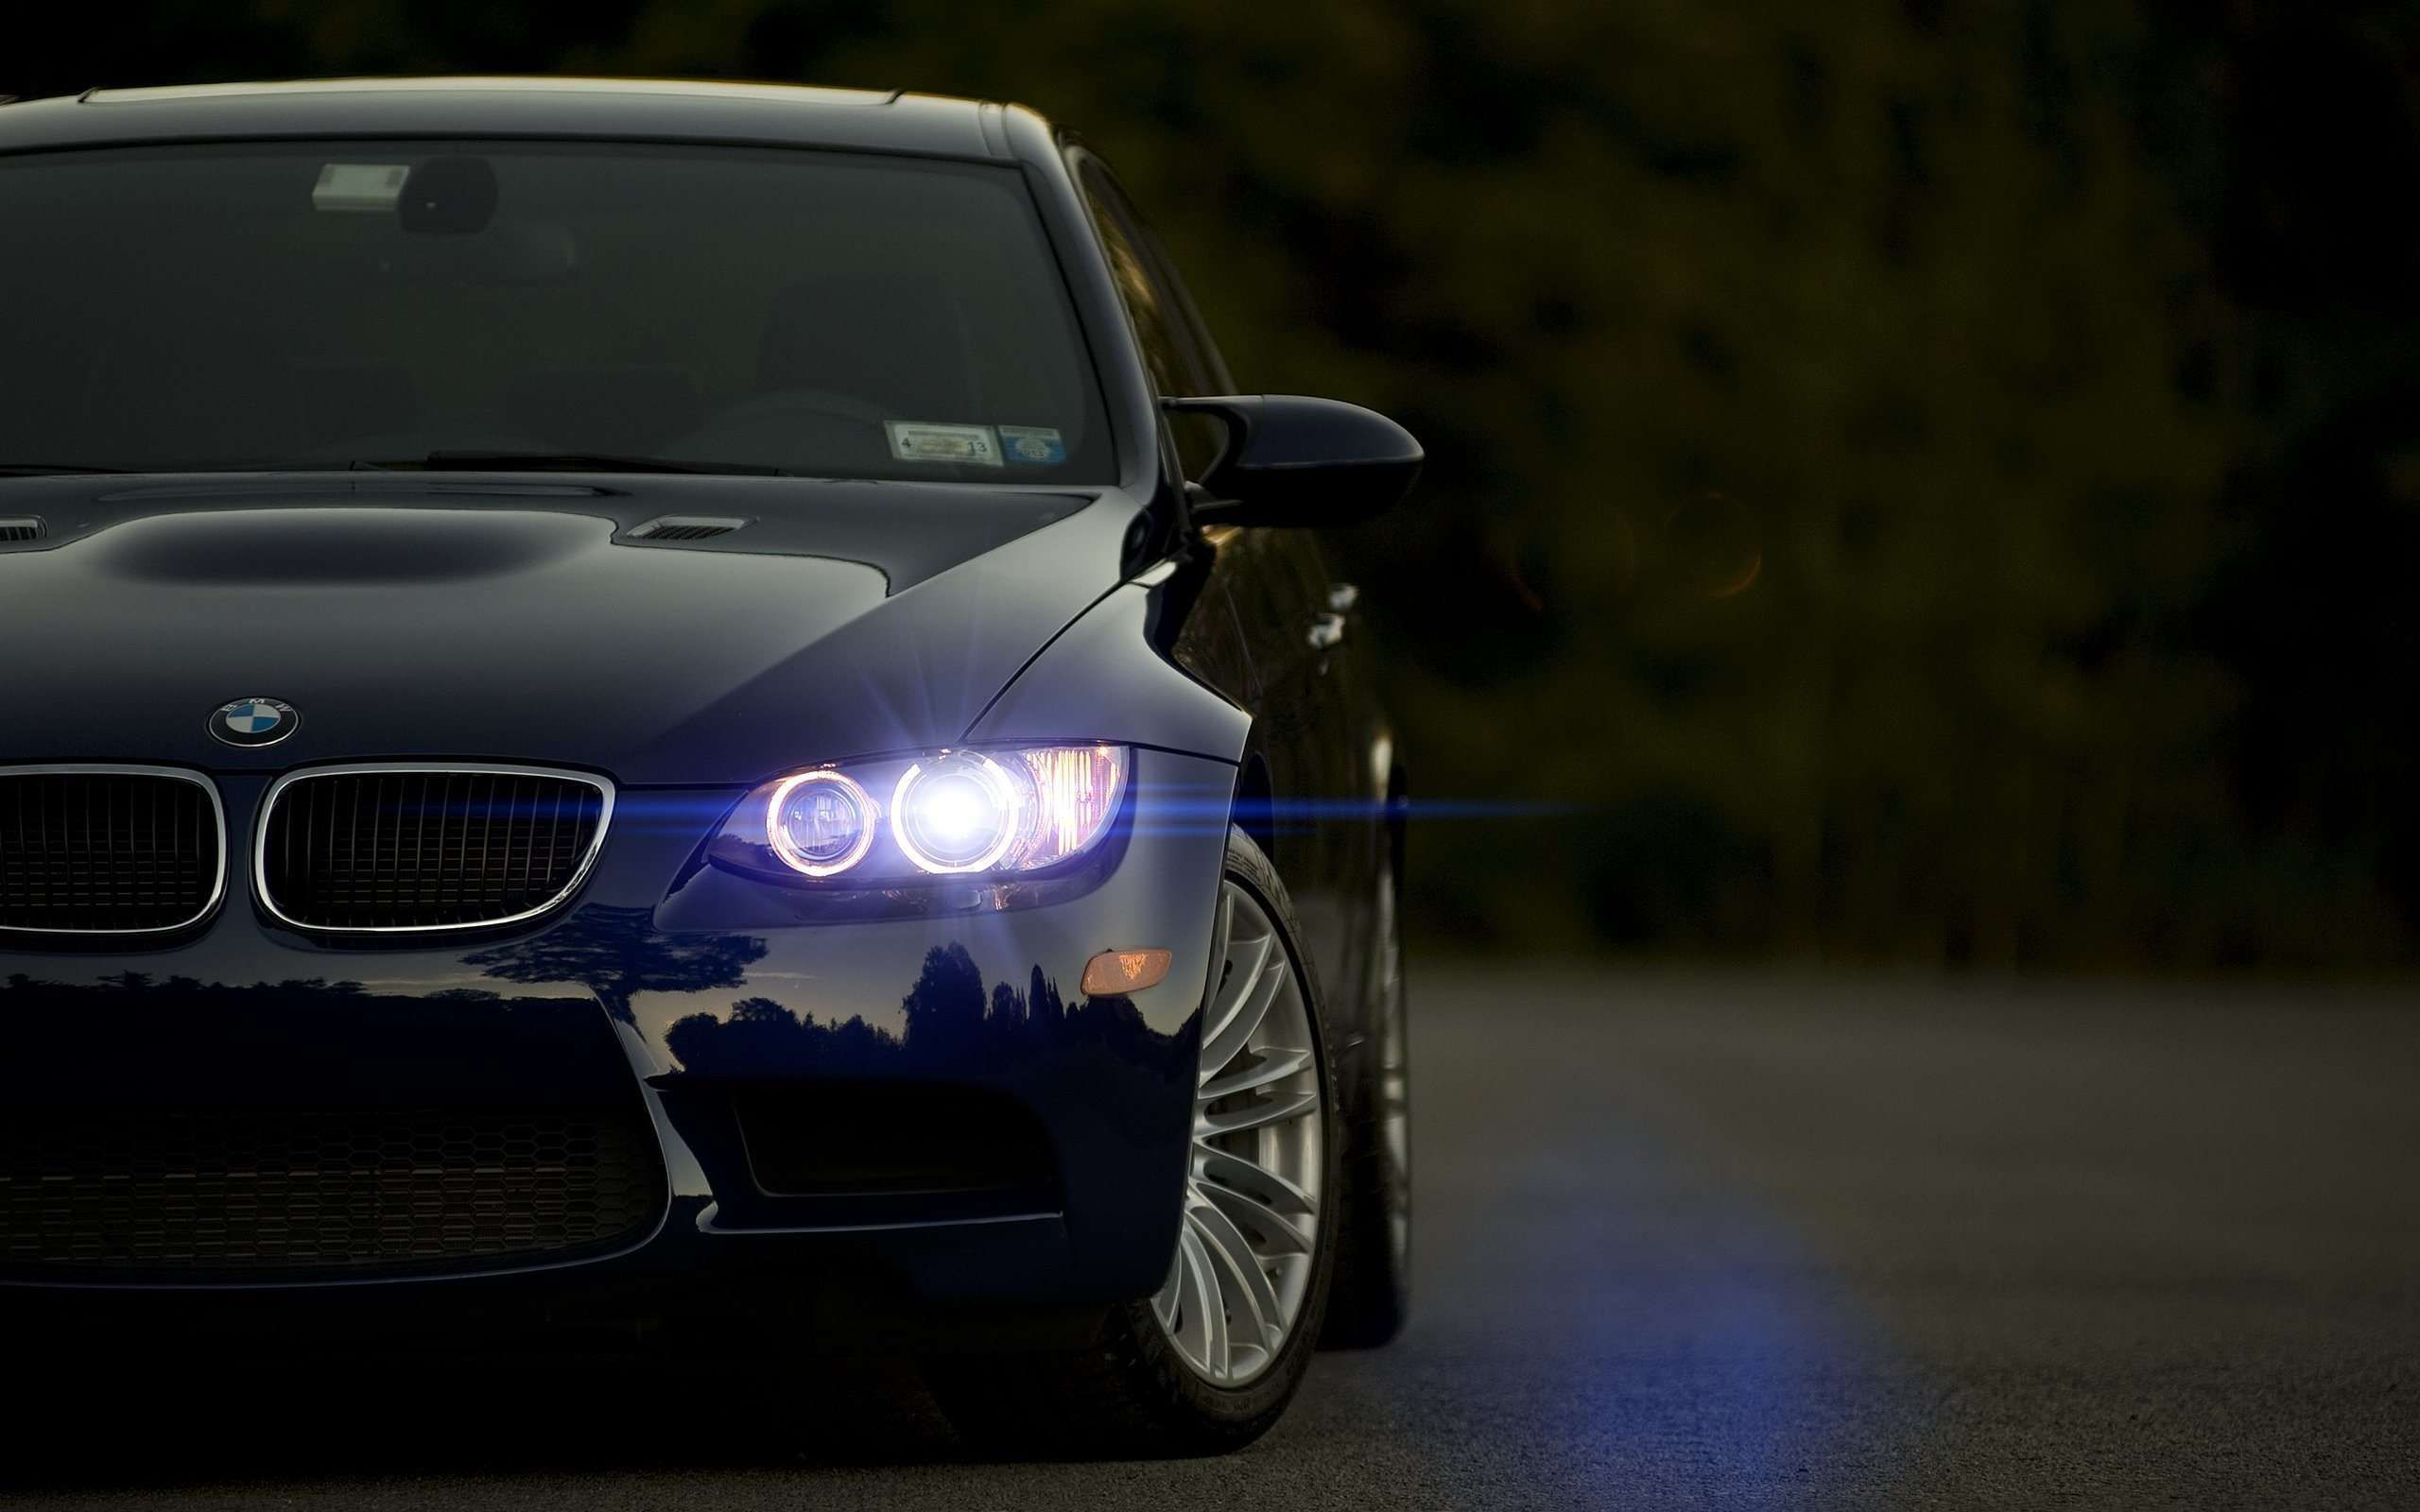 Bmw 3 Series Frontside Wallpapers Bmw Wallpapers Bmw Black Car